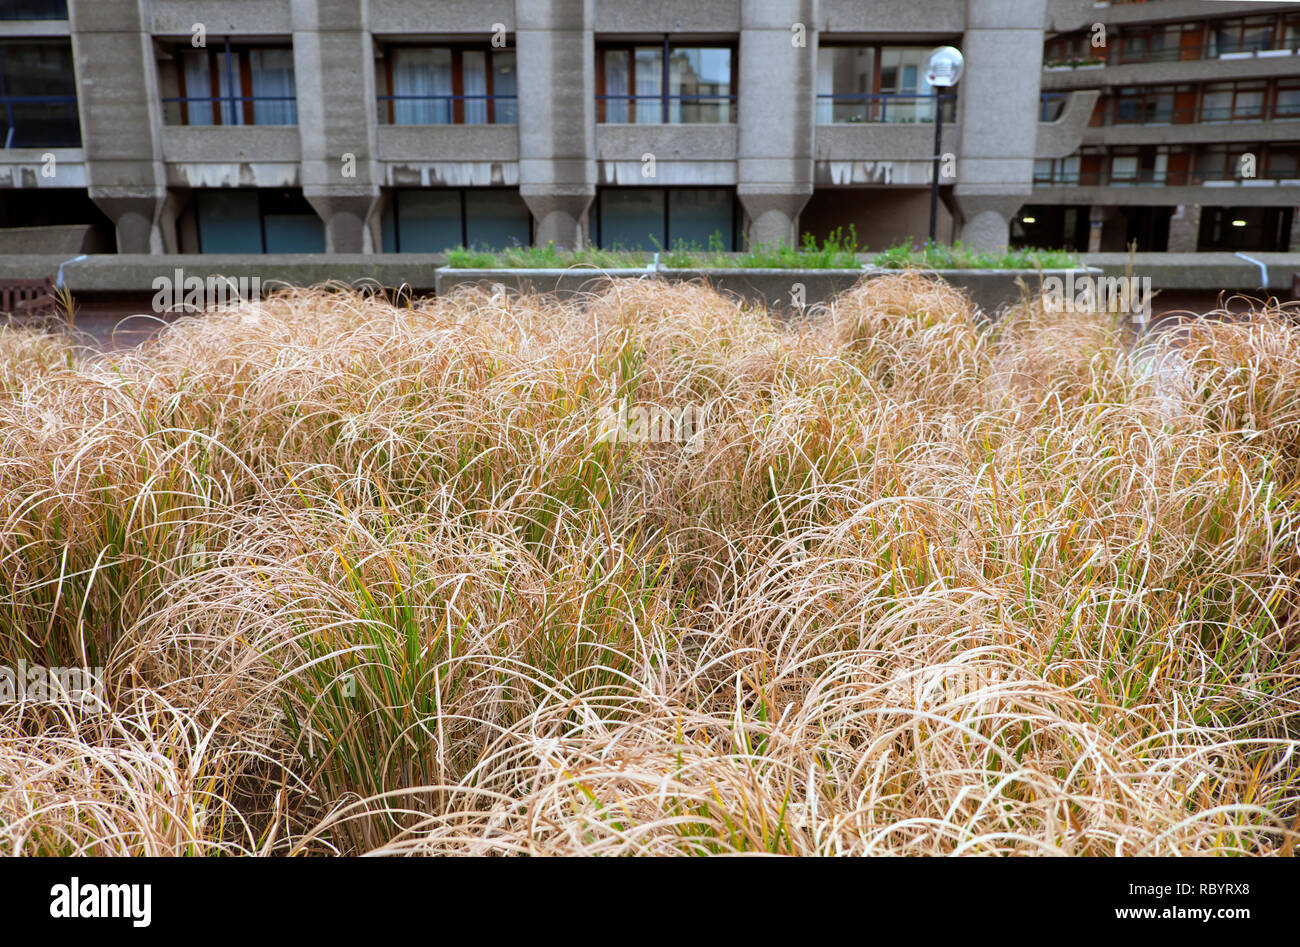 Barbican Garten Stockfotos Barbican Garten Bilder Alamy